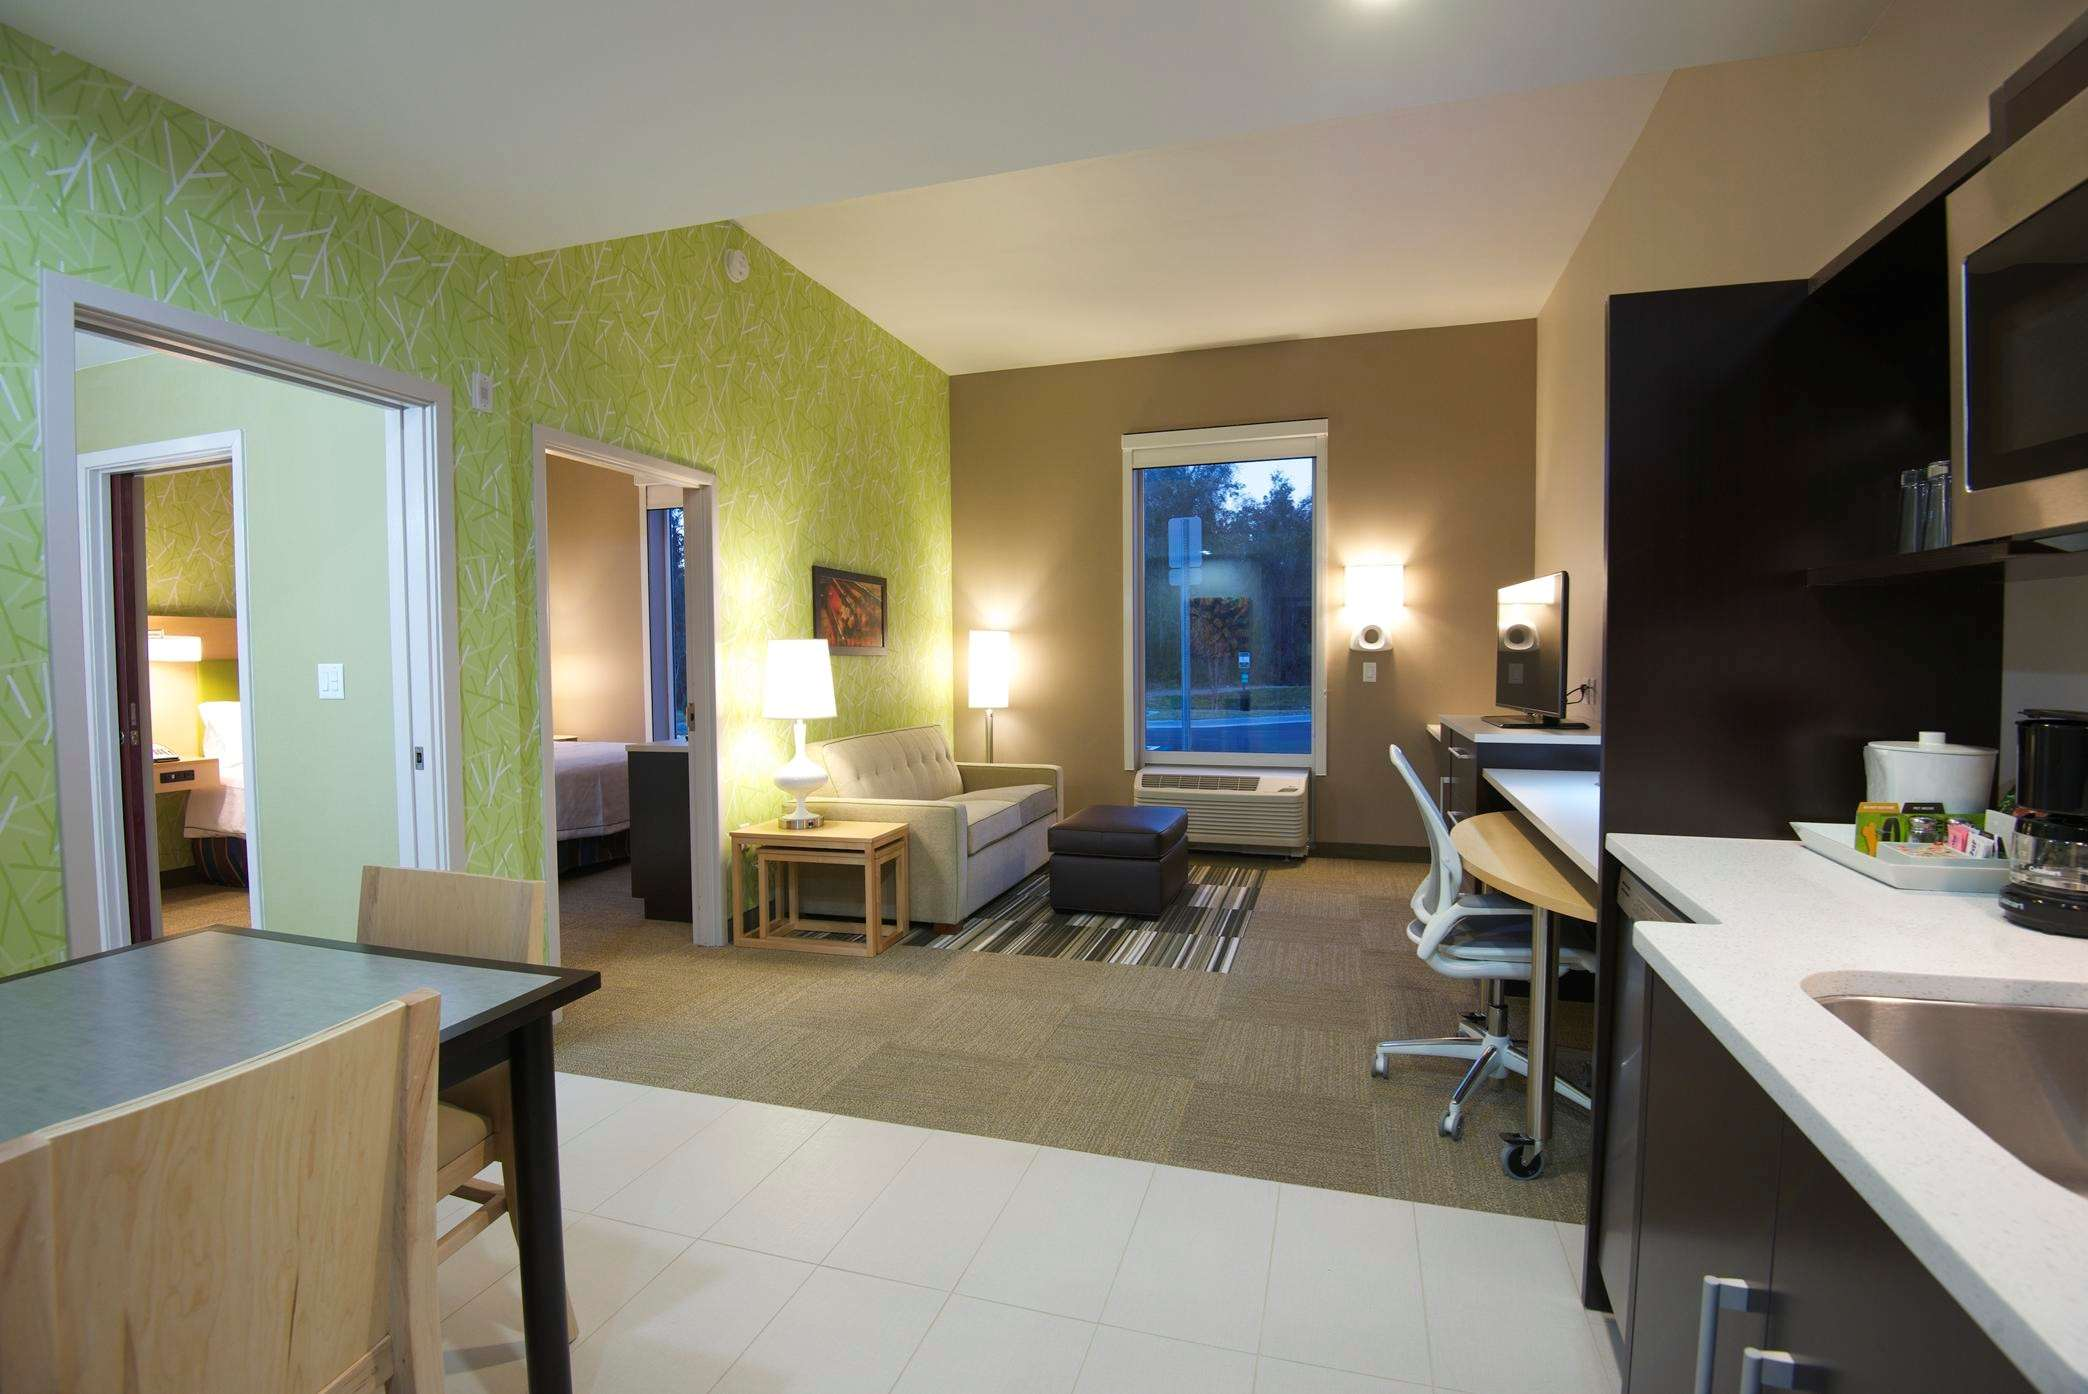 Home2 Suites by Hilton Lake City image 0